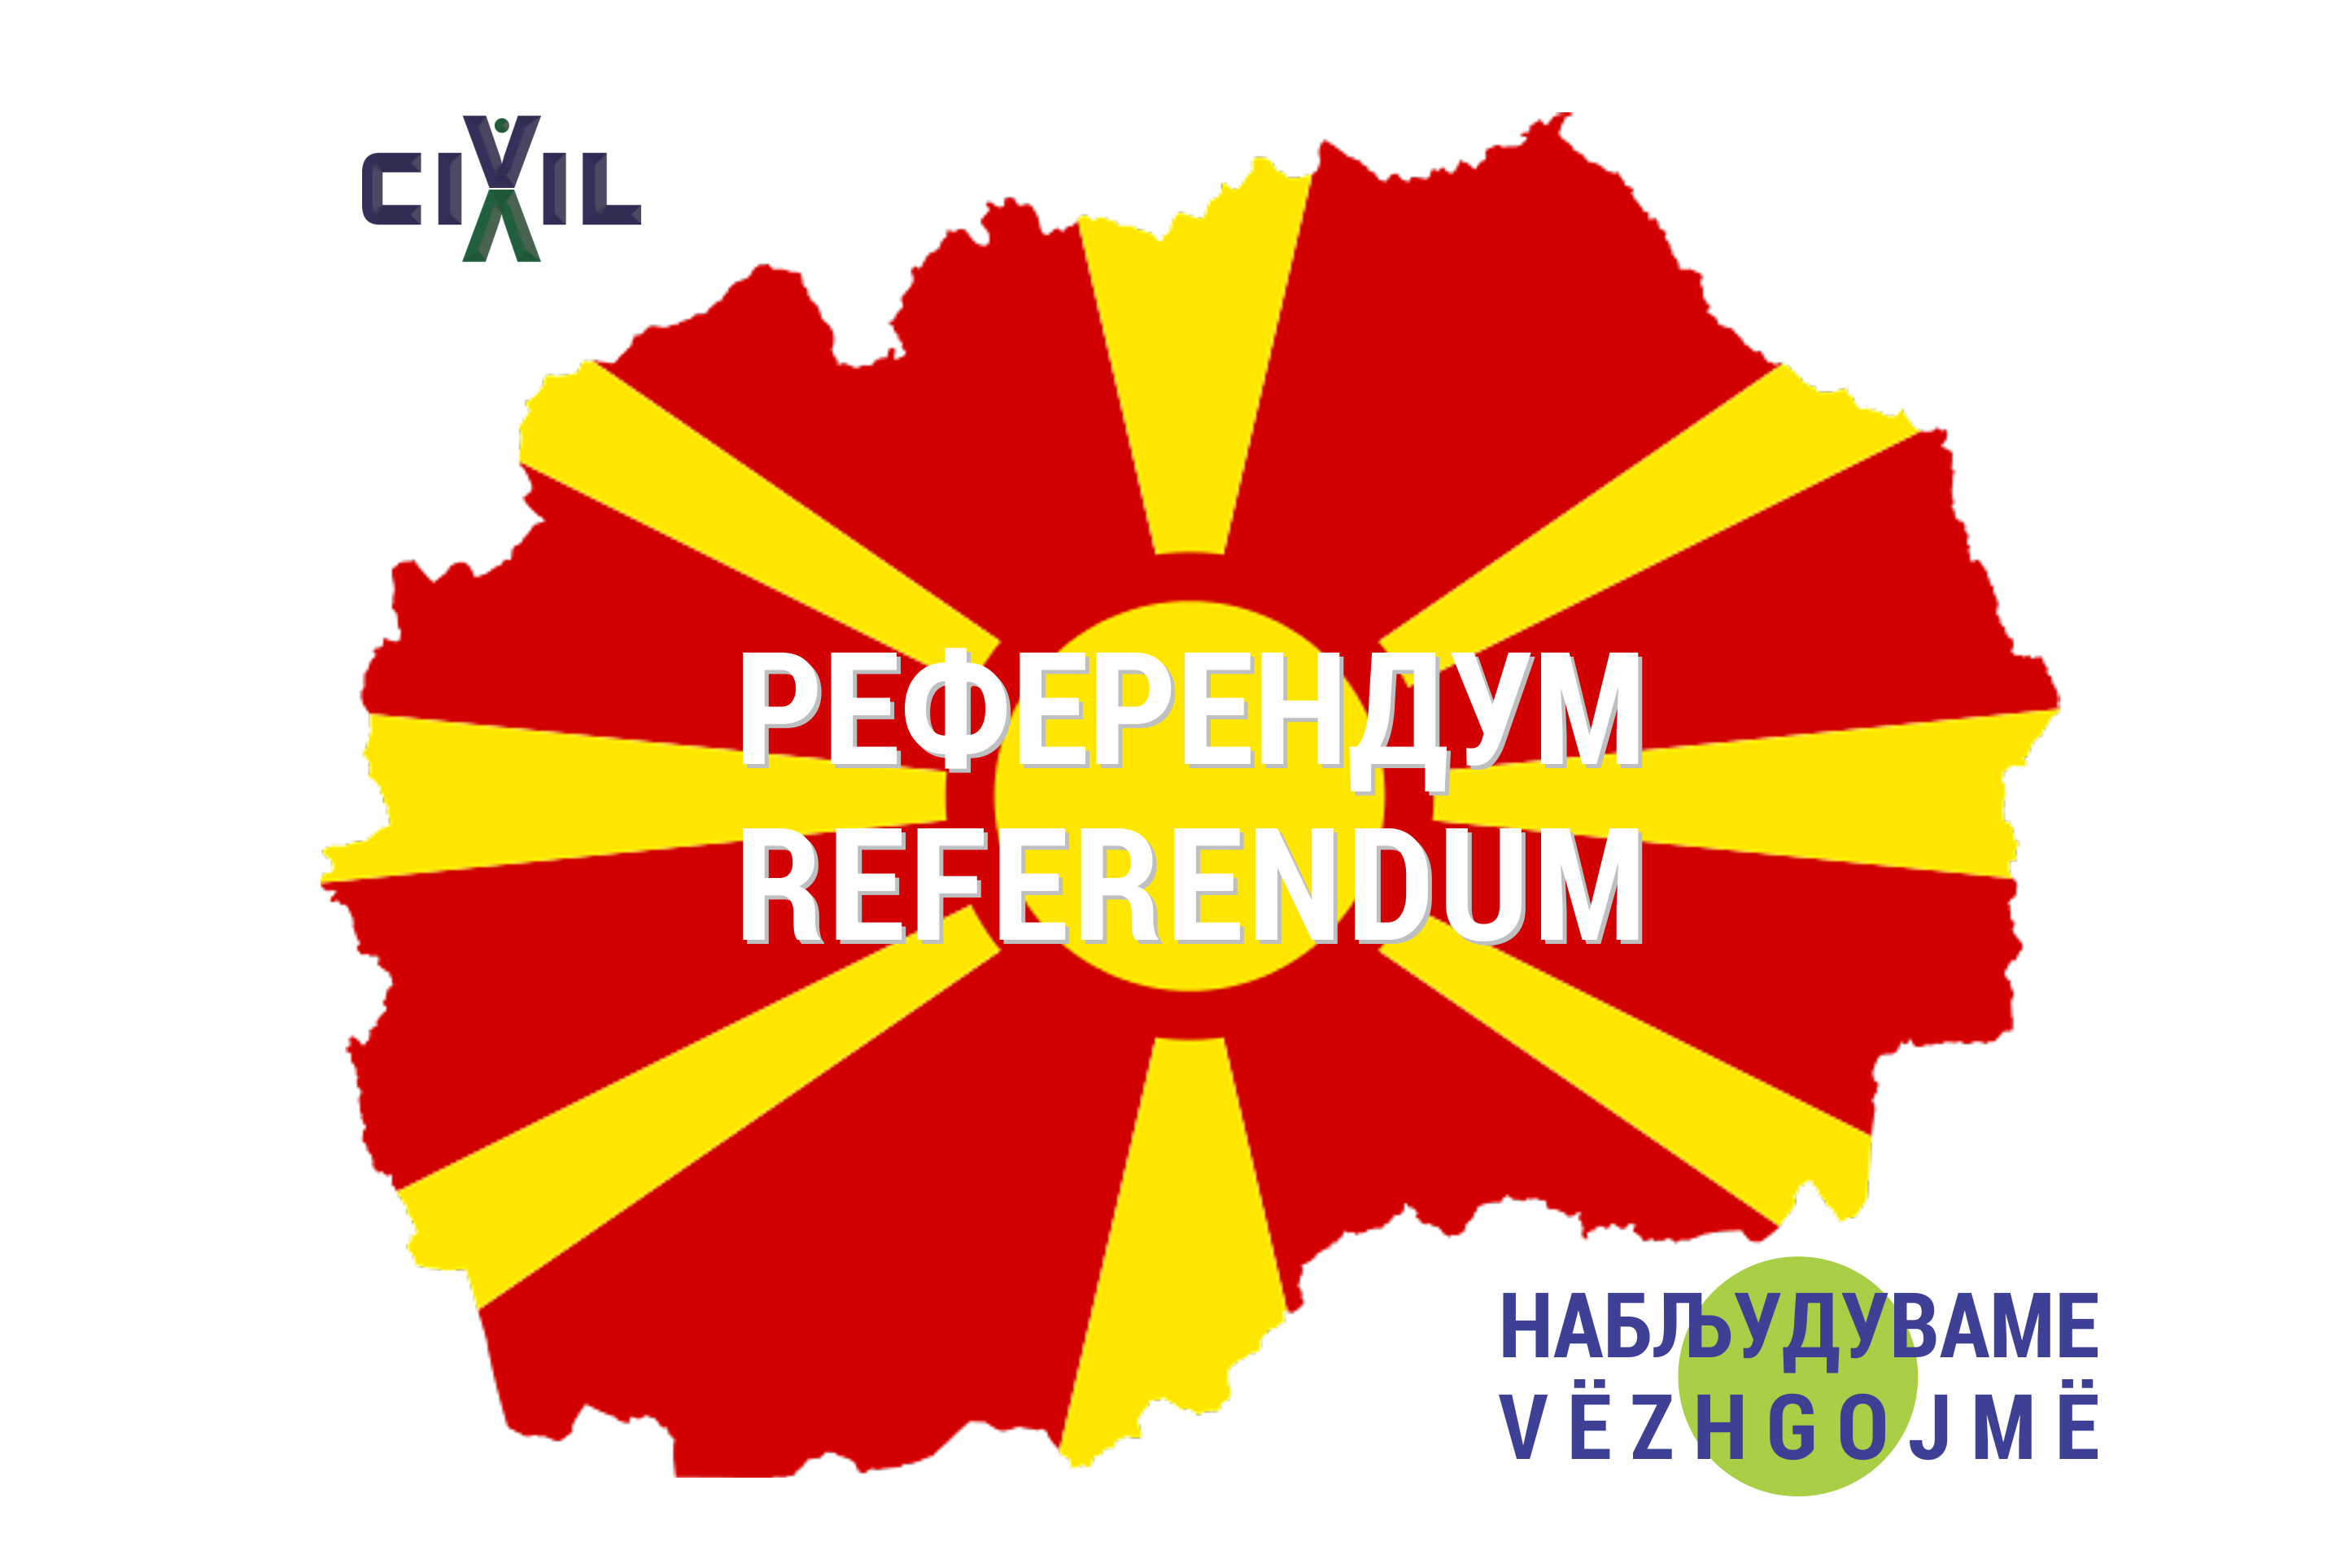 CIVIL with significant analyses and assessments on the political processes in Macedonia